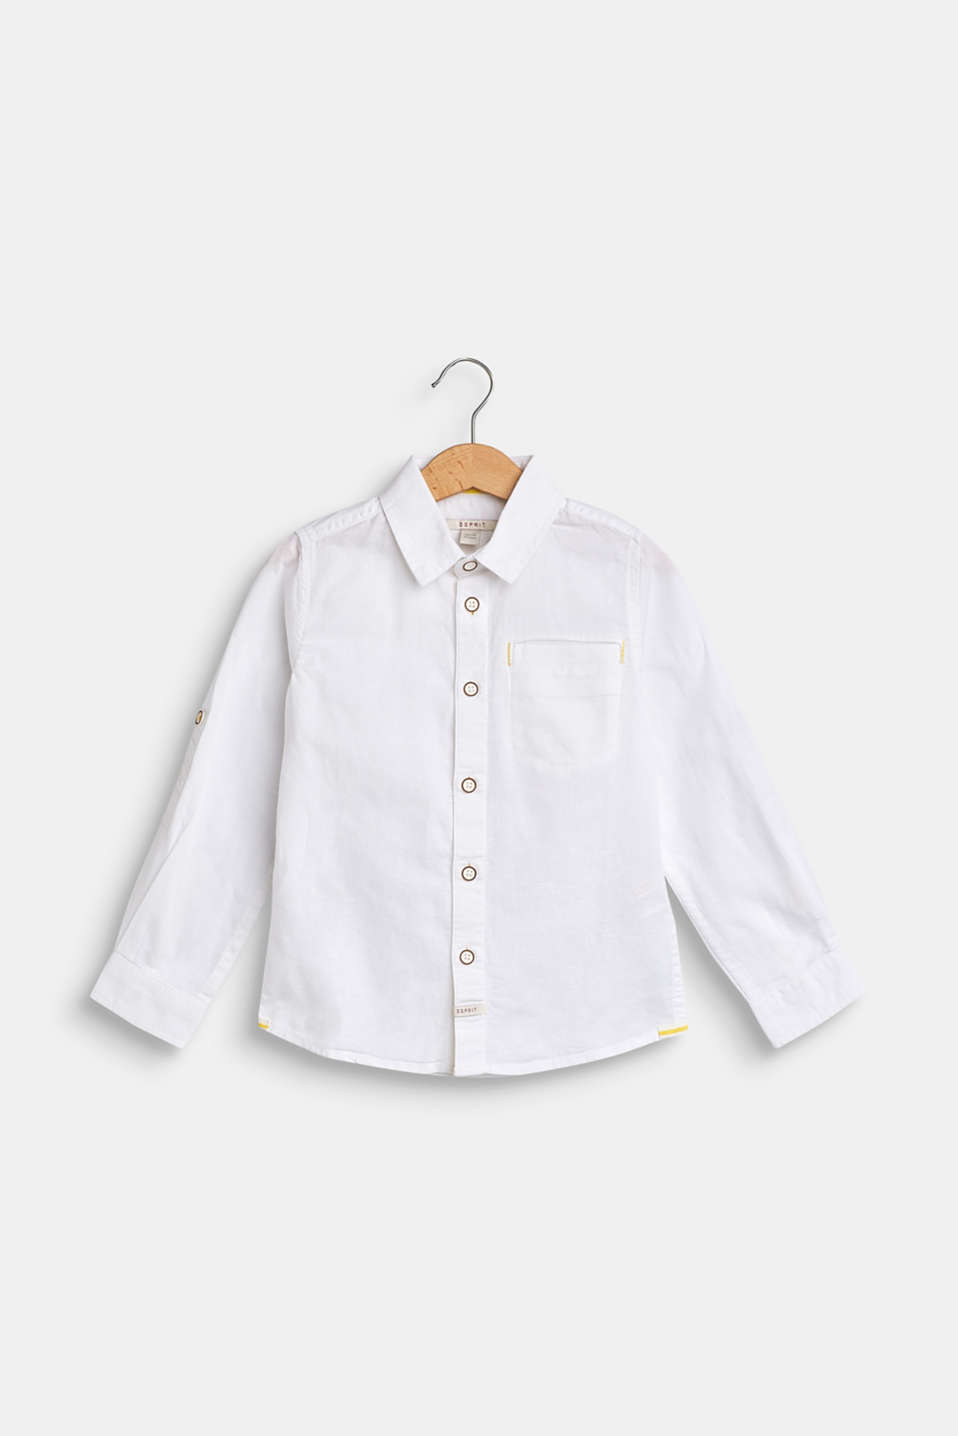 Esprit - Cotton/linen blend shirt